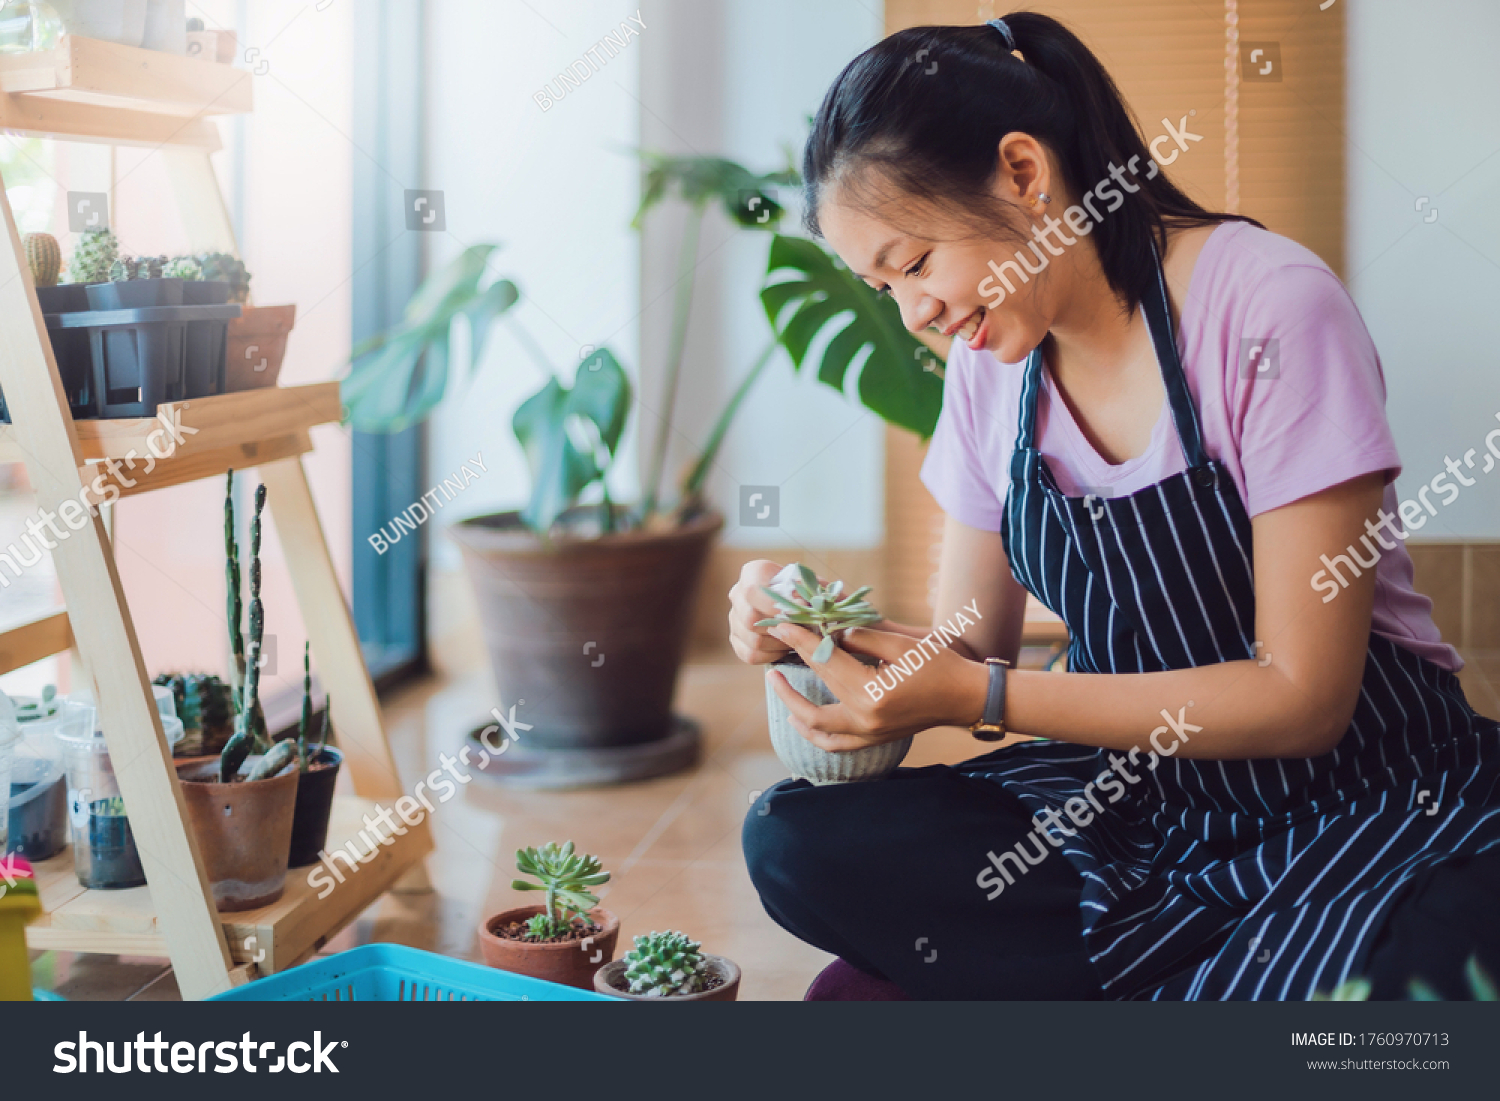 Asian young woman wearing apron caring for green indoor plant at home.New normal lifestyle concept of Hobby during quarantine and social distancing to stop spread disease of Coronavirus. #1760970713